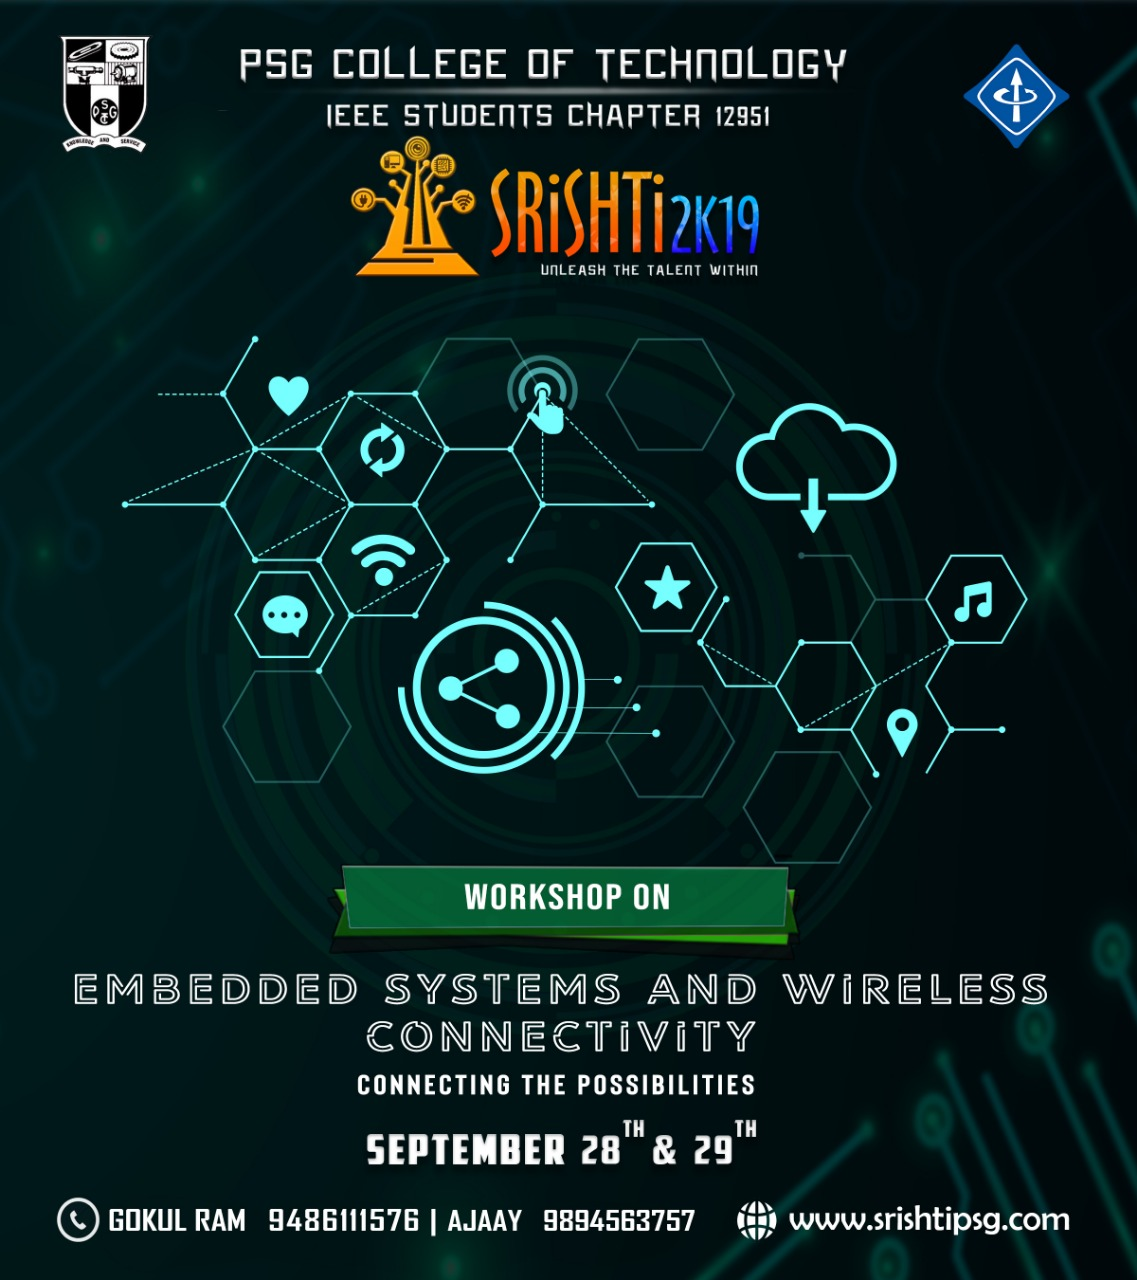 Embedded systems and Wireless Connectivity 2019